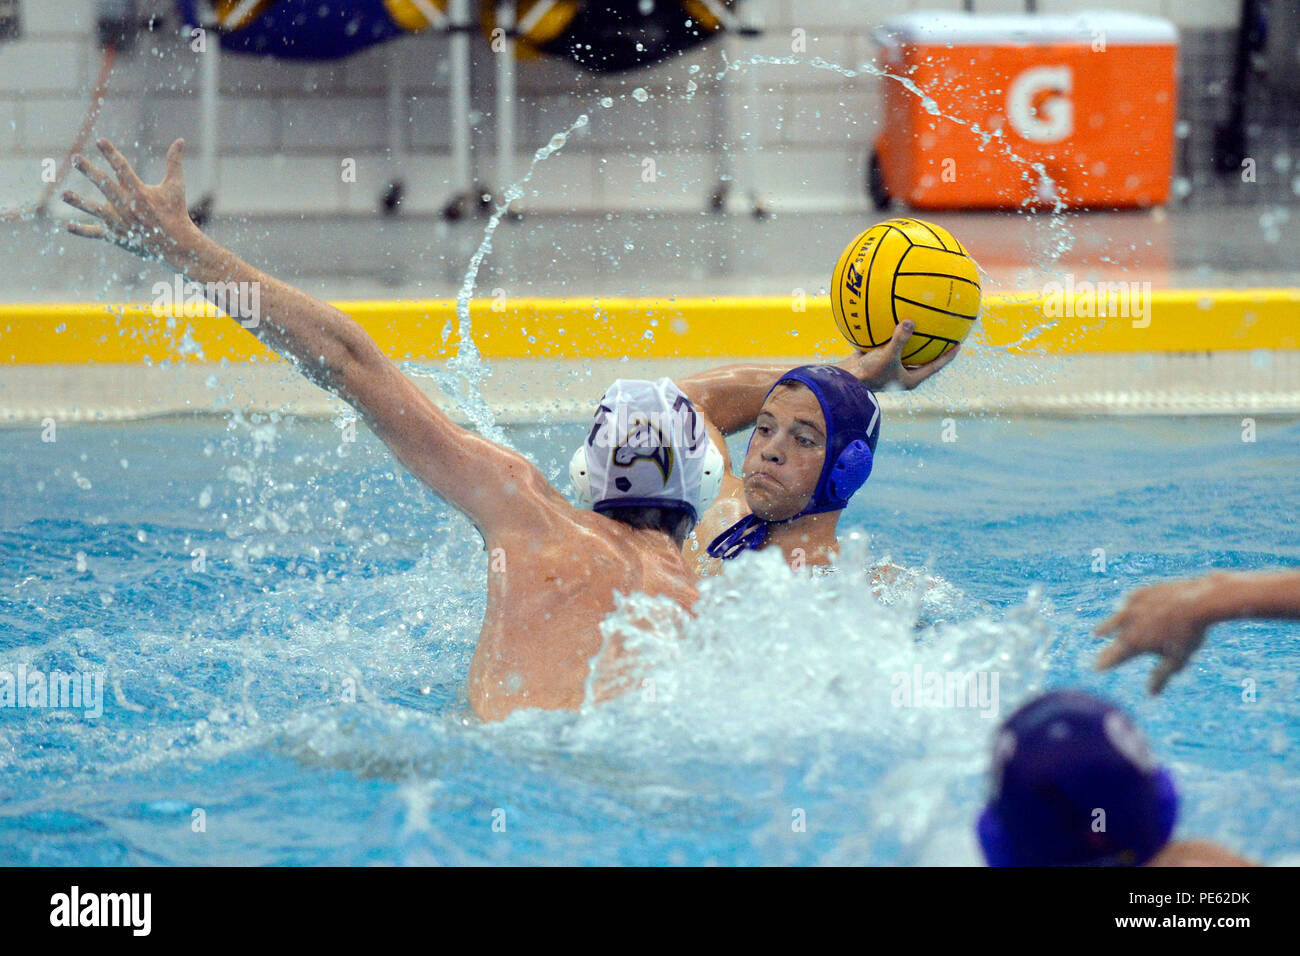 Robby Stiefel, a junior, passes against U.C. Davis as the U.S. Air Force Academy Falcons met the Aggies in a Western Water Polo Association game at the Cadet Natatorium in Colorado Springs, Colo., Oct. 3, 2015. U.C. Davis defeated Air Force 11-10 in triple overtime. (Air Force photo/Bill Evans) - Stock Image